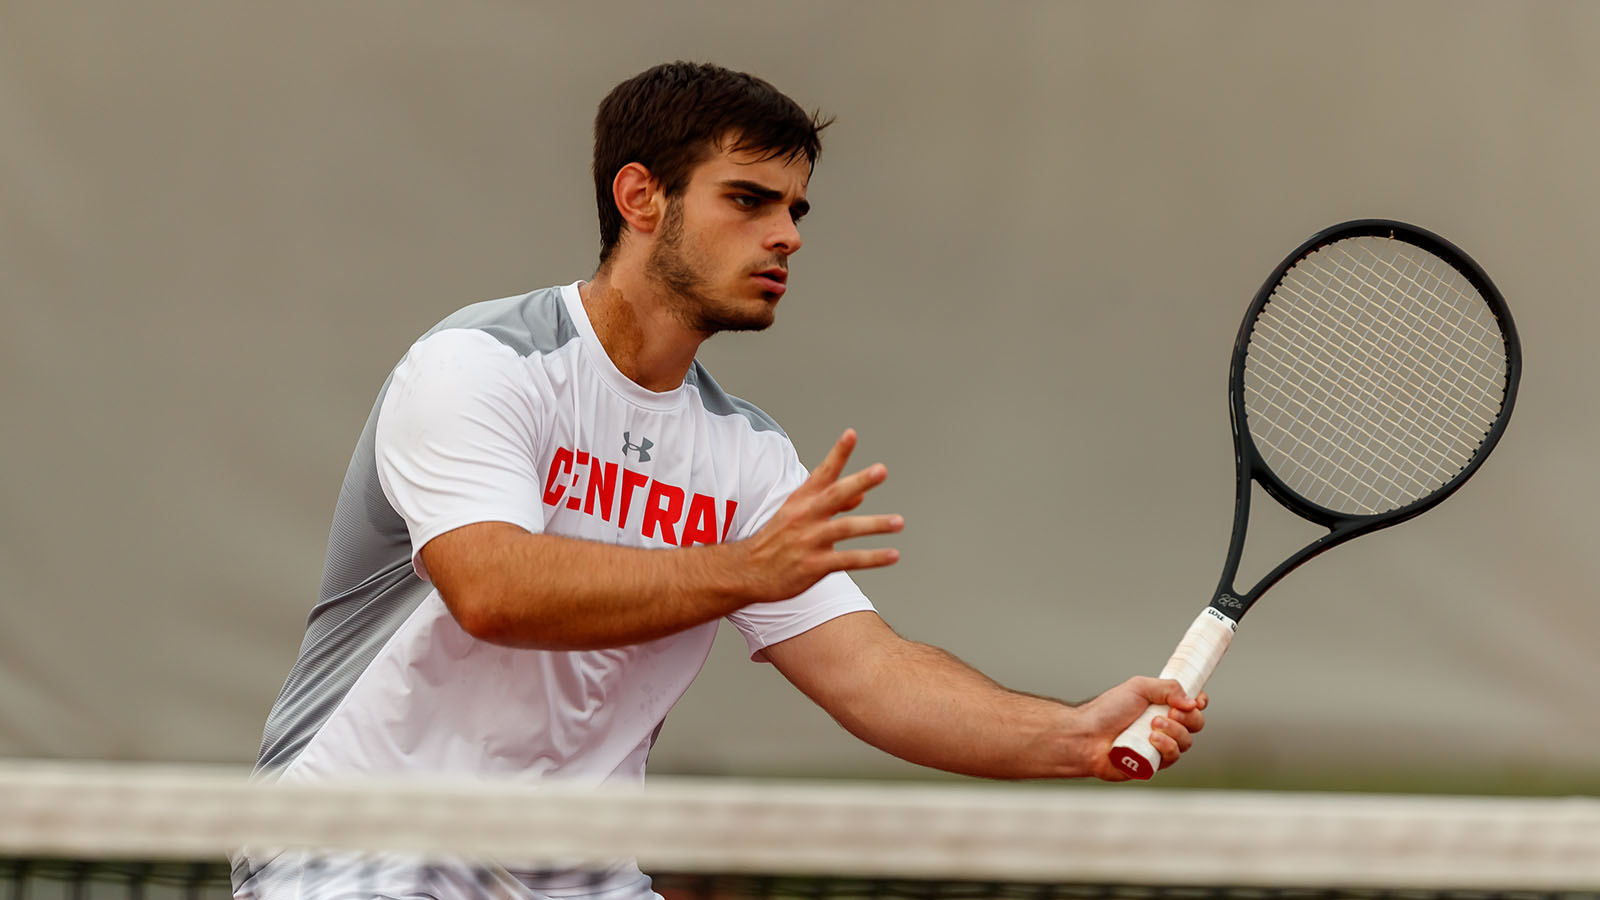 Central counting on men's tennis depth in 2020 - Central College Athletics